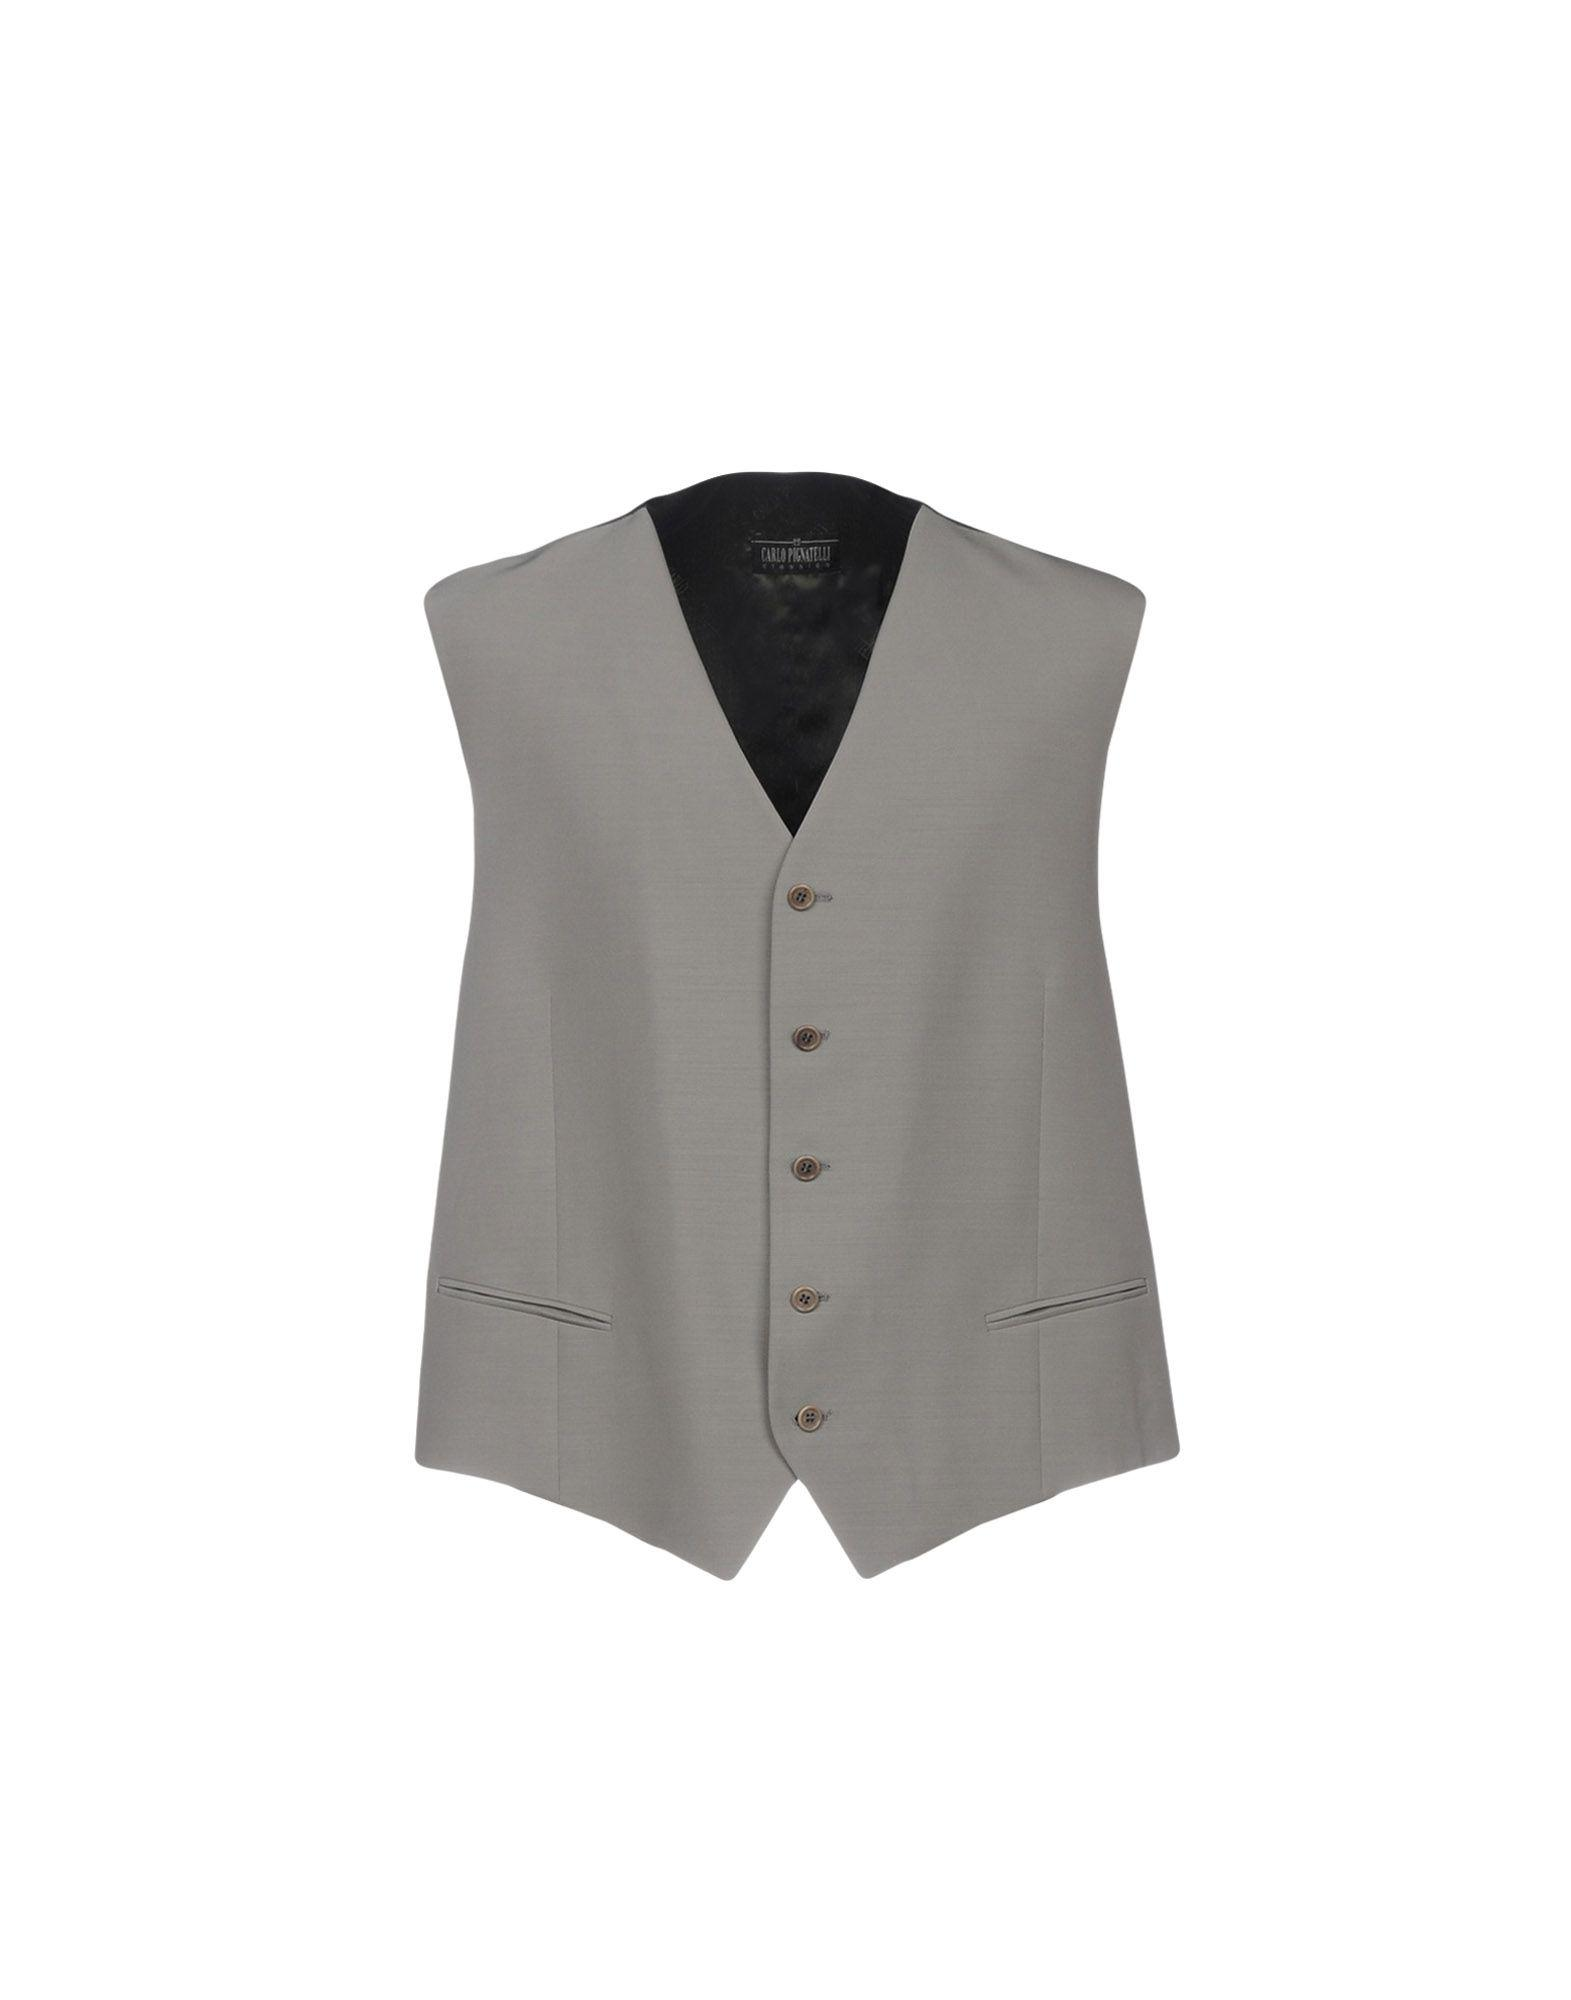 SUITS AND JACKETS - Waistcoats Carlo Pignatelli Buy Online Authentic Lowest Price Many Kinds Of Sale Online Comfortable Cheap Online Sast Sale Online JkNXjsMtcS